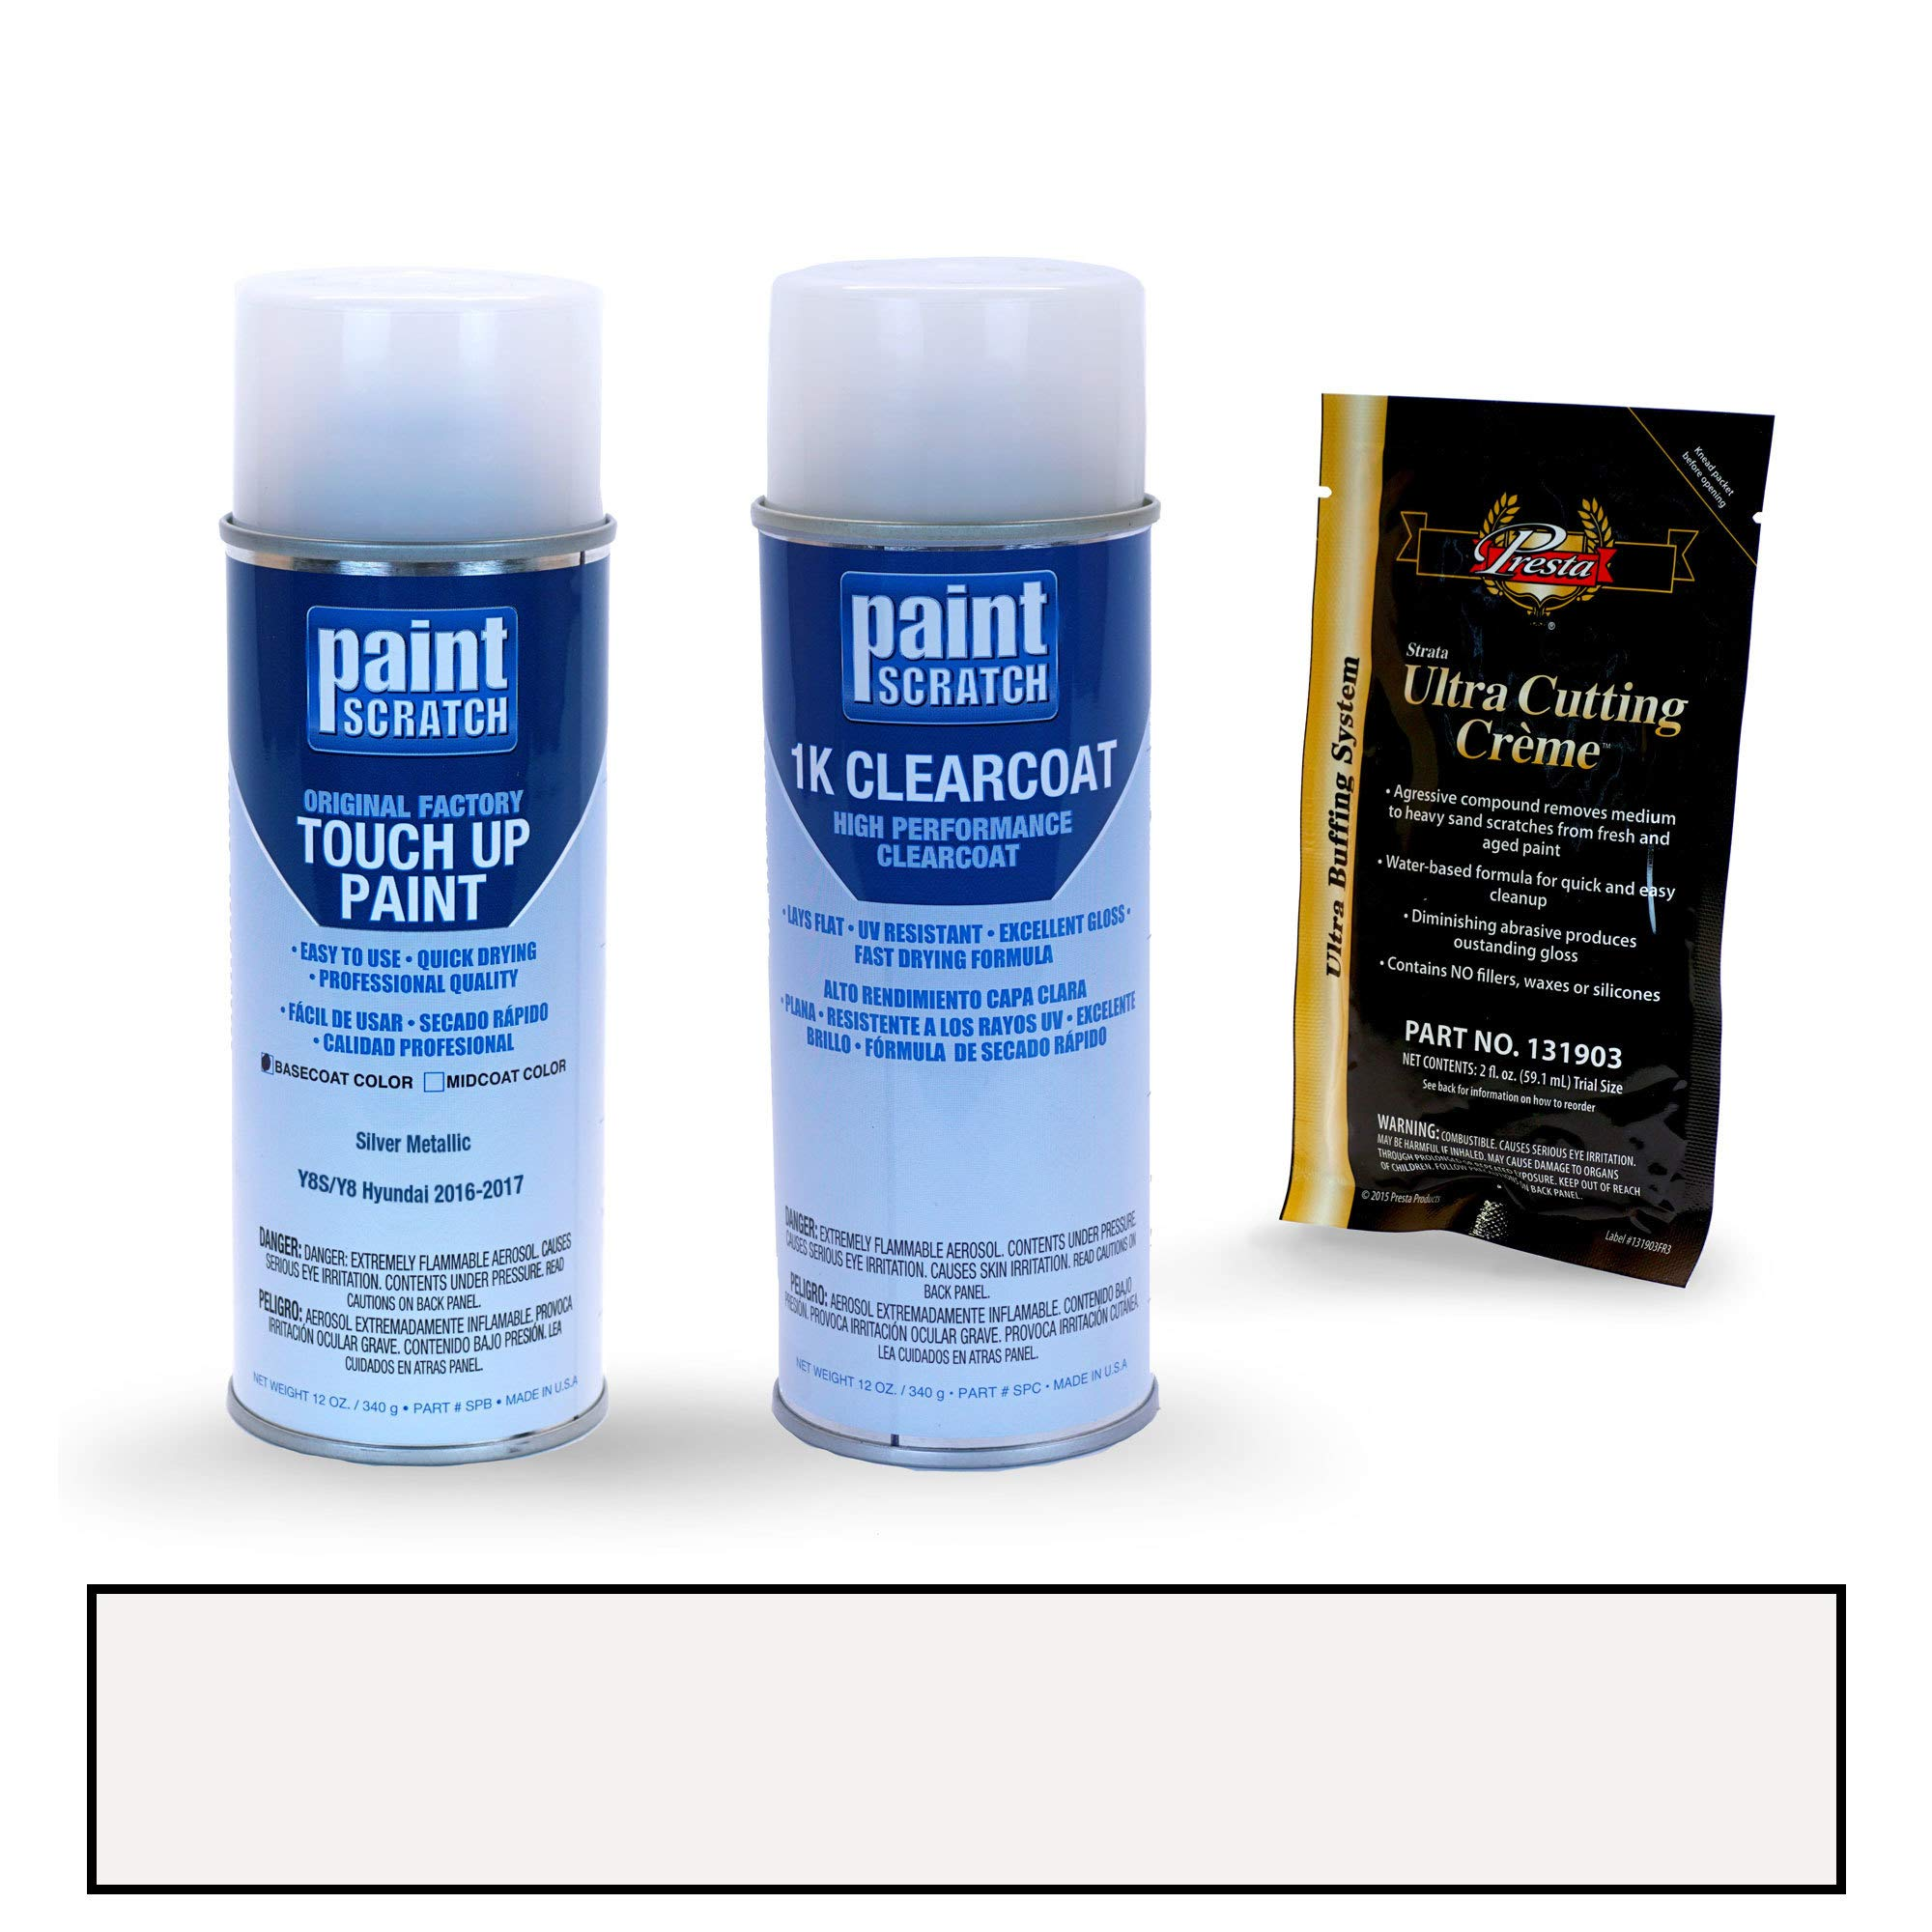 PAINTSCRATCH Touch Up Paint Spray Can Car Scratch Repair Kit - Compatible with Hyundai Elantra Silver Metallic (Color Code: Y8S/Y8)